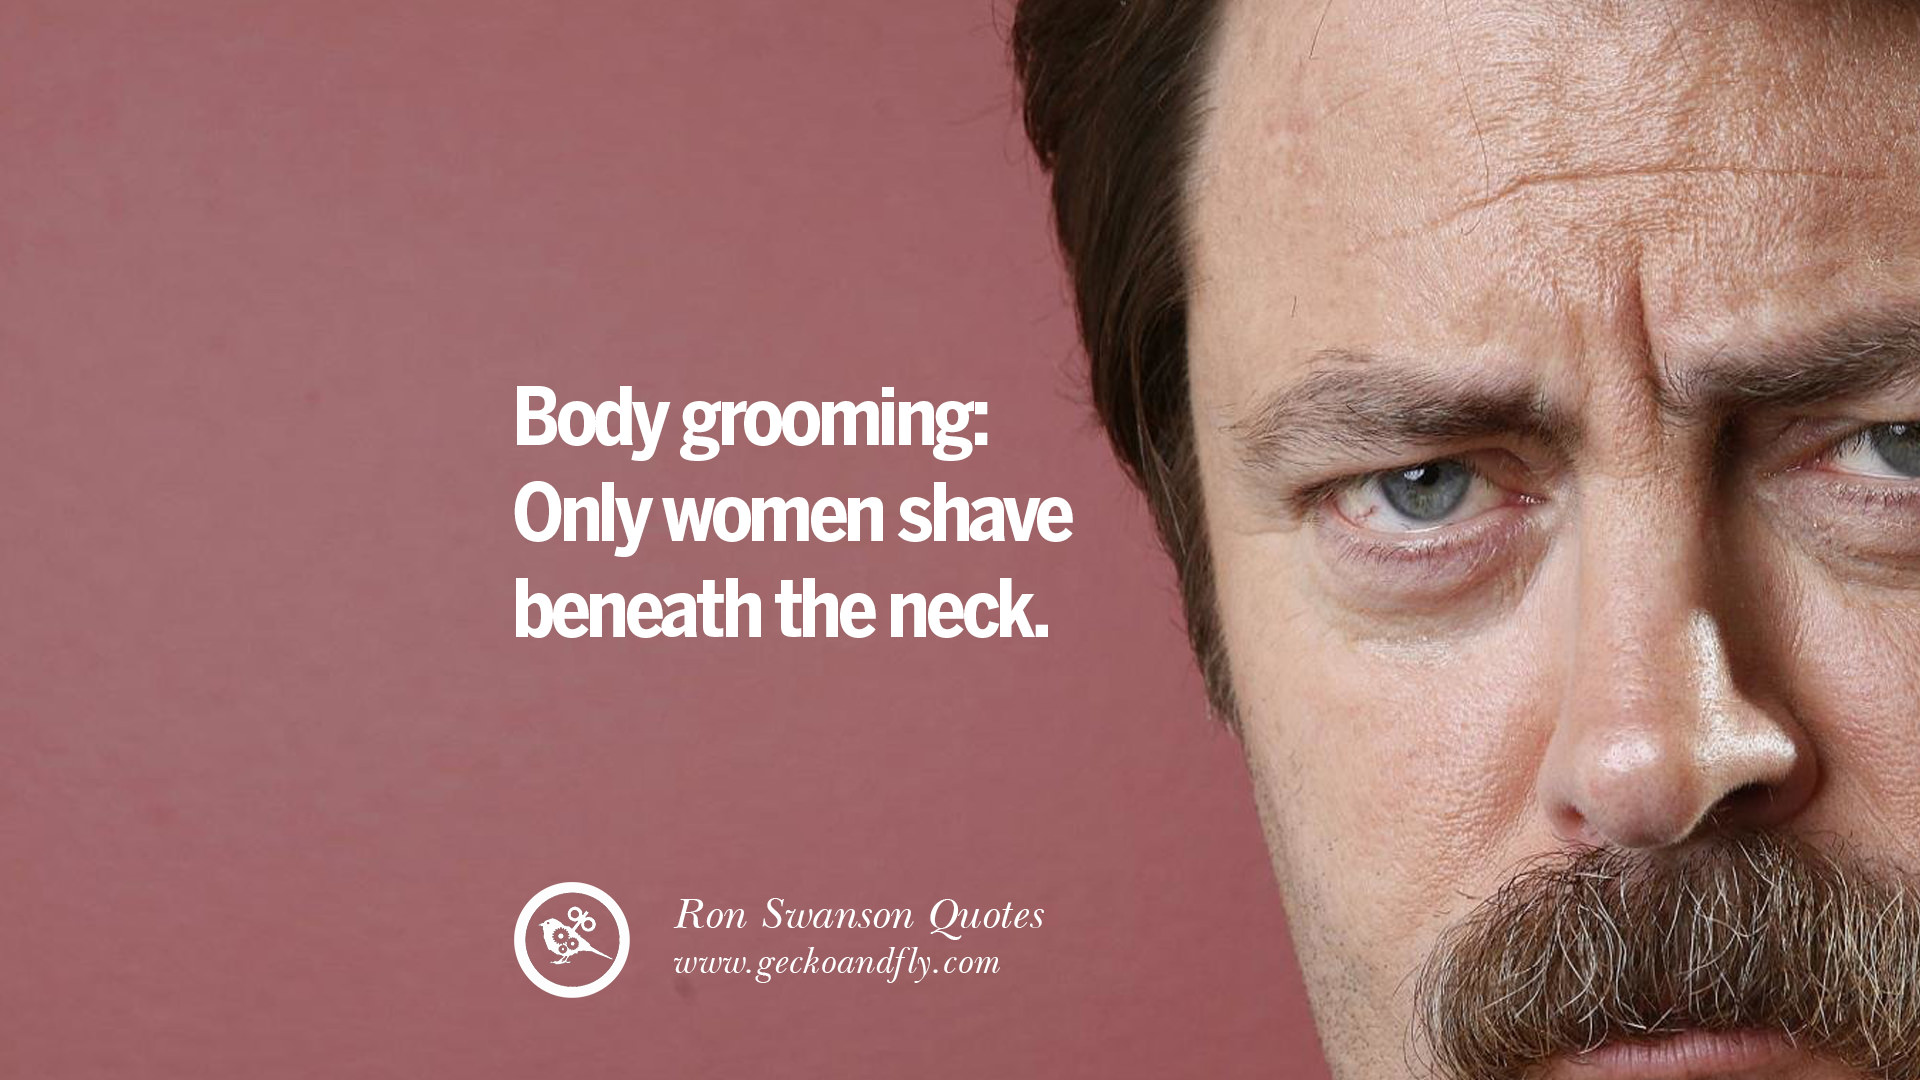 Unique Ron Swanson  Quotes And Memes Of A MeatEating Man  High Steaks